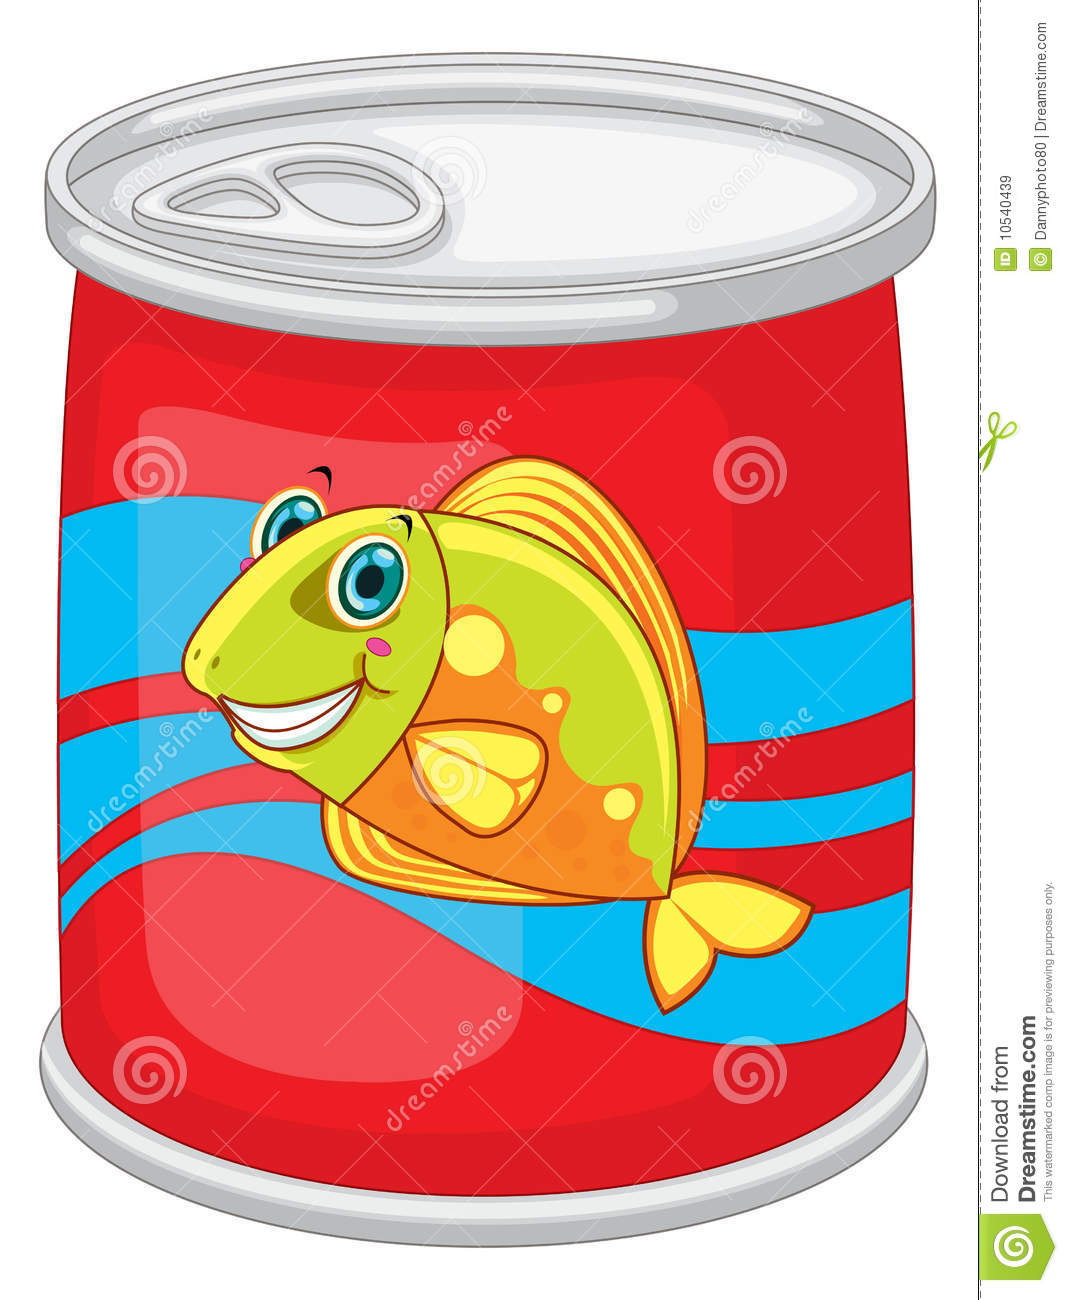 Cake Tin Clipart : Tin can stock vector. Image of closeup, pack, shiny ...